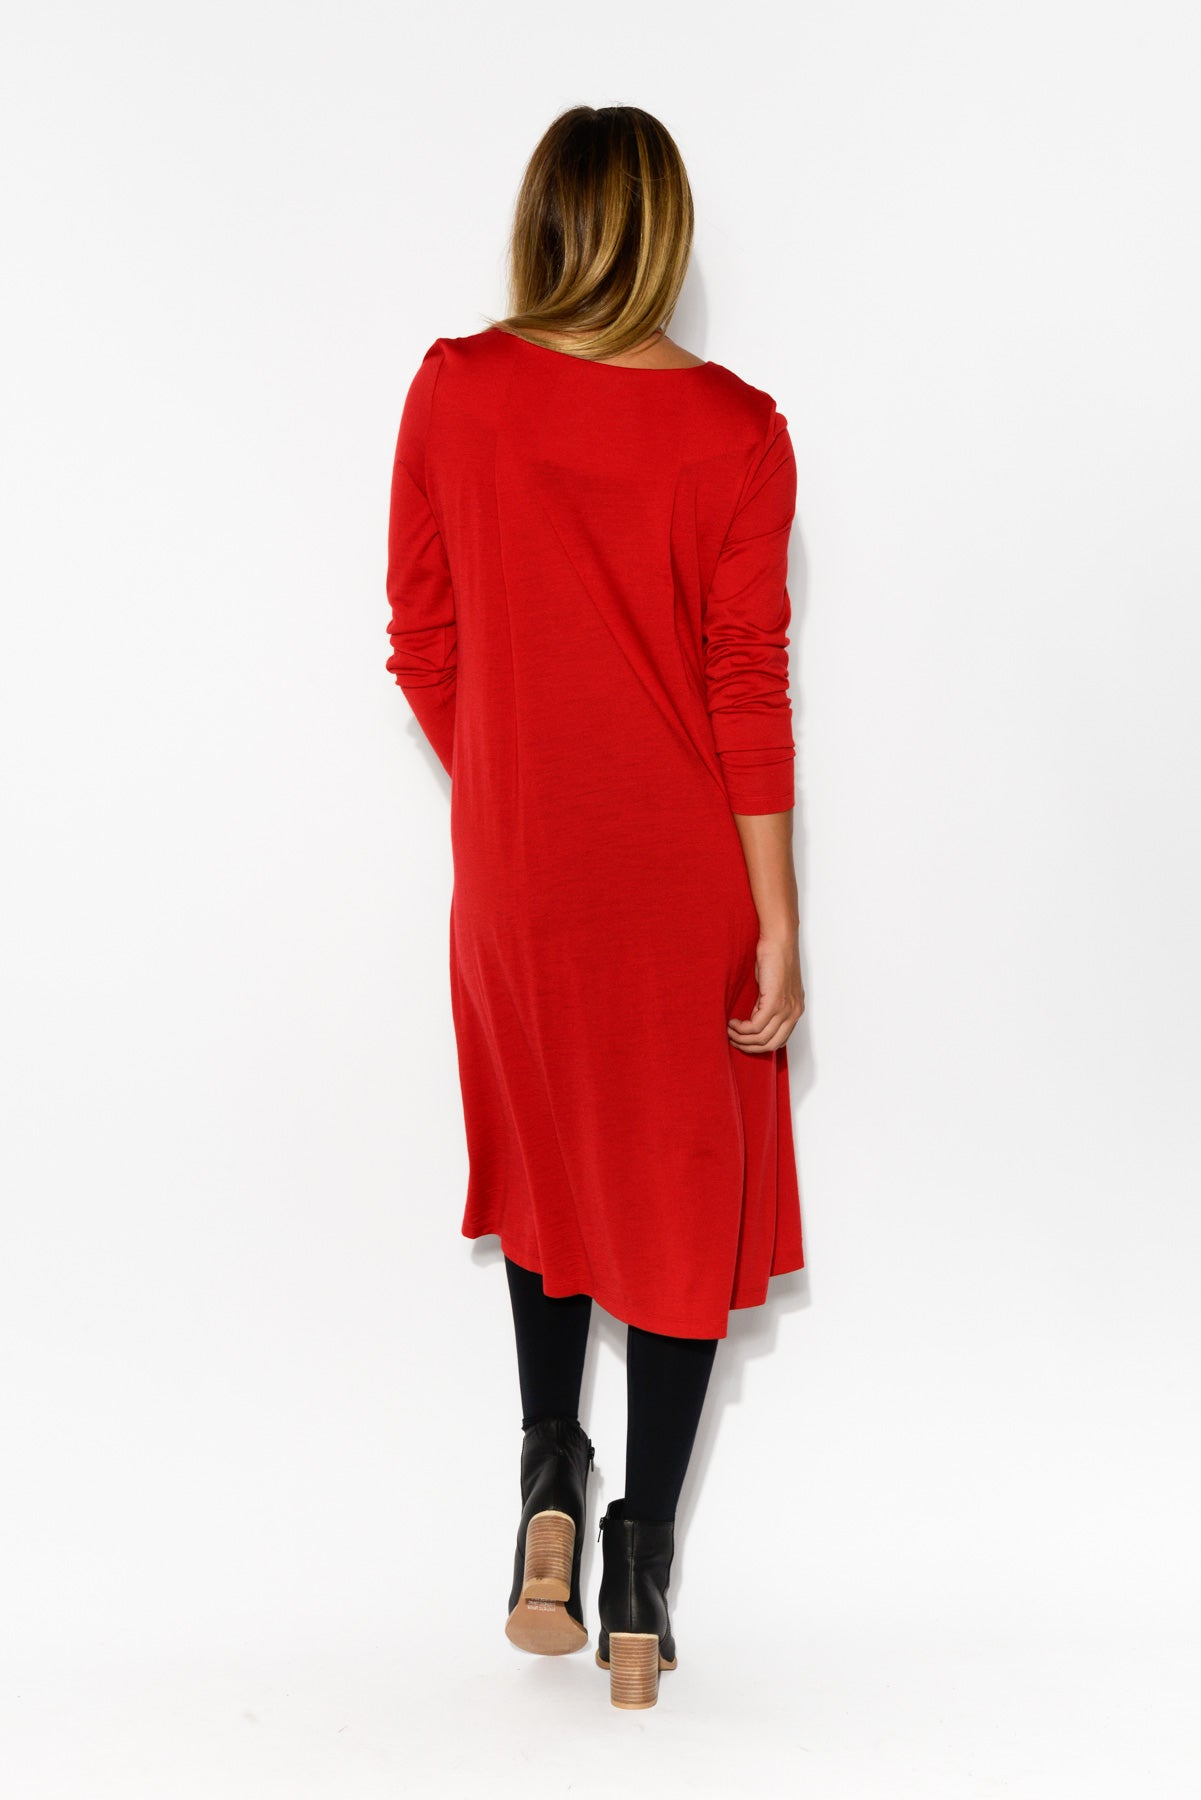 Vanity Red Merino Wool Swing Dress - Blue Bungalow